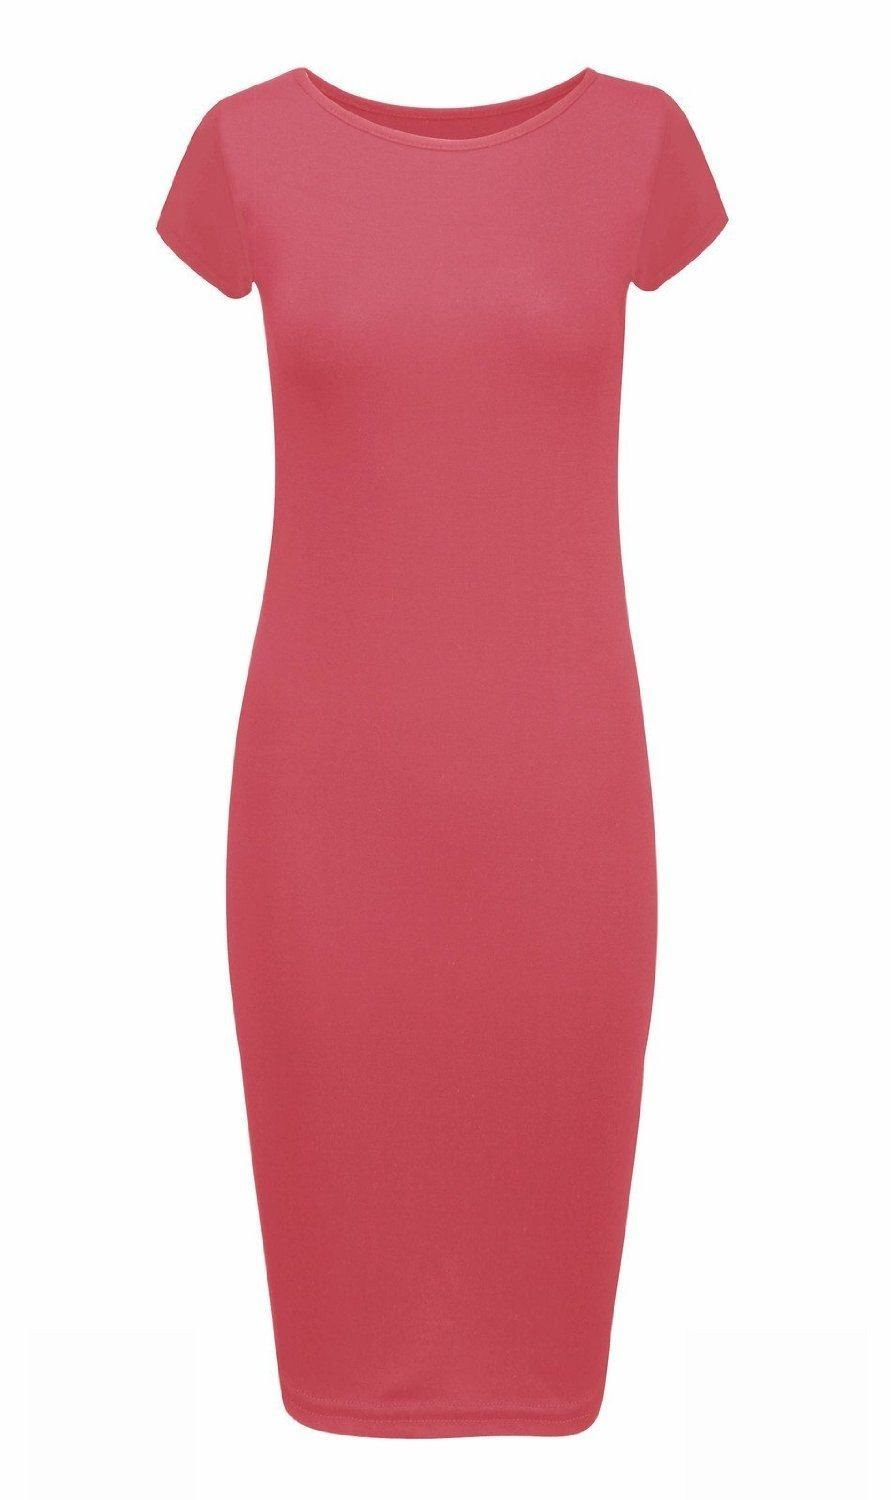 Style geraldton for year dresses olds 11 bodycon wedding stores